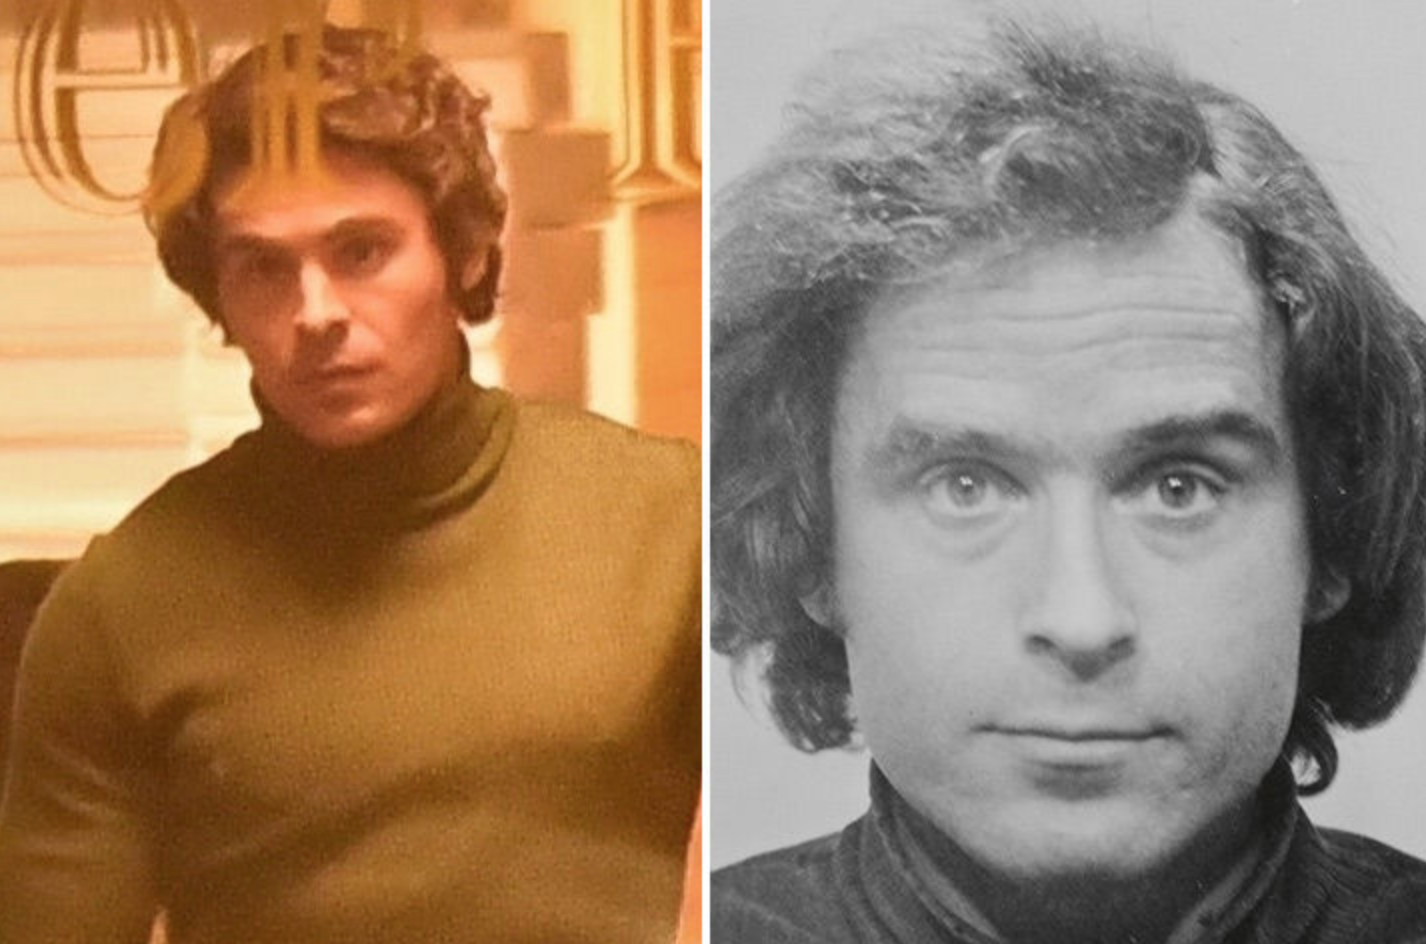 Zac Efron transported in police automobile for Ted Bundy biopic